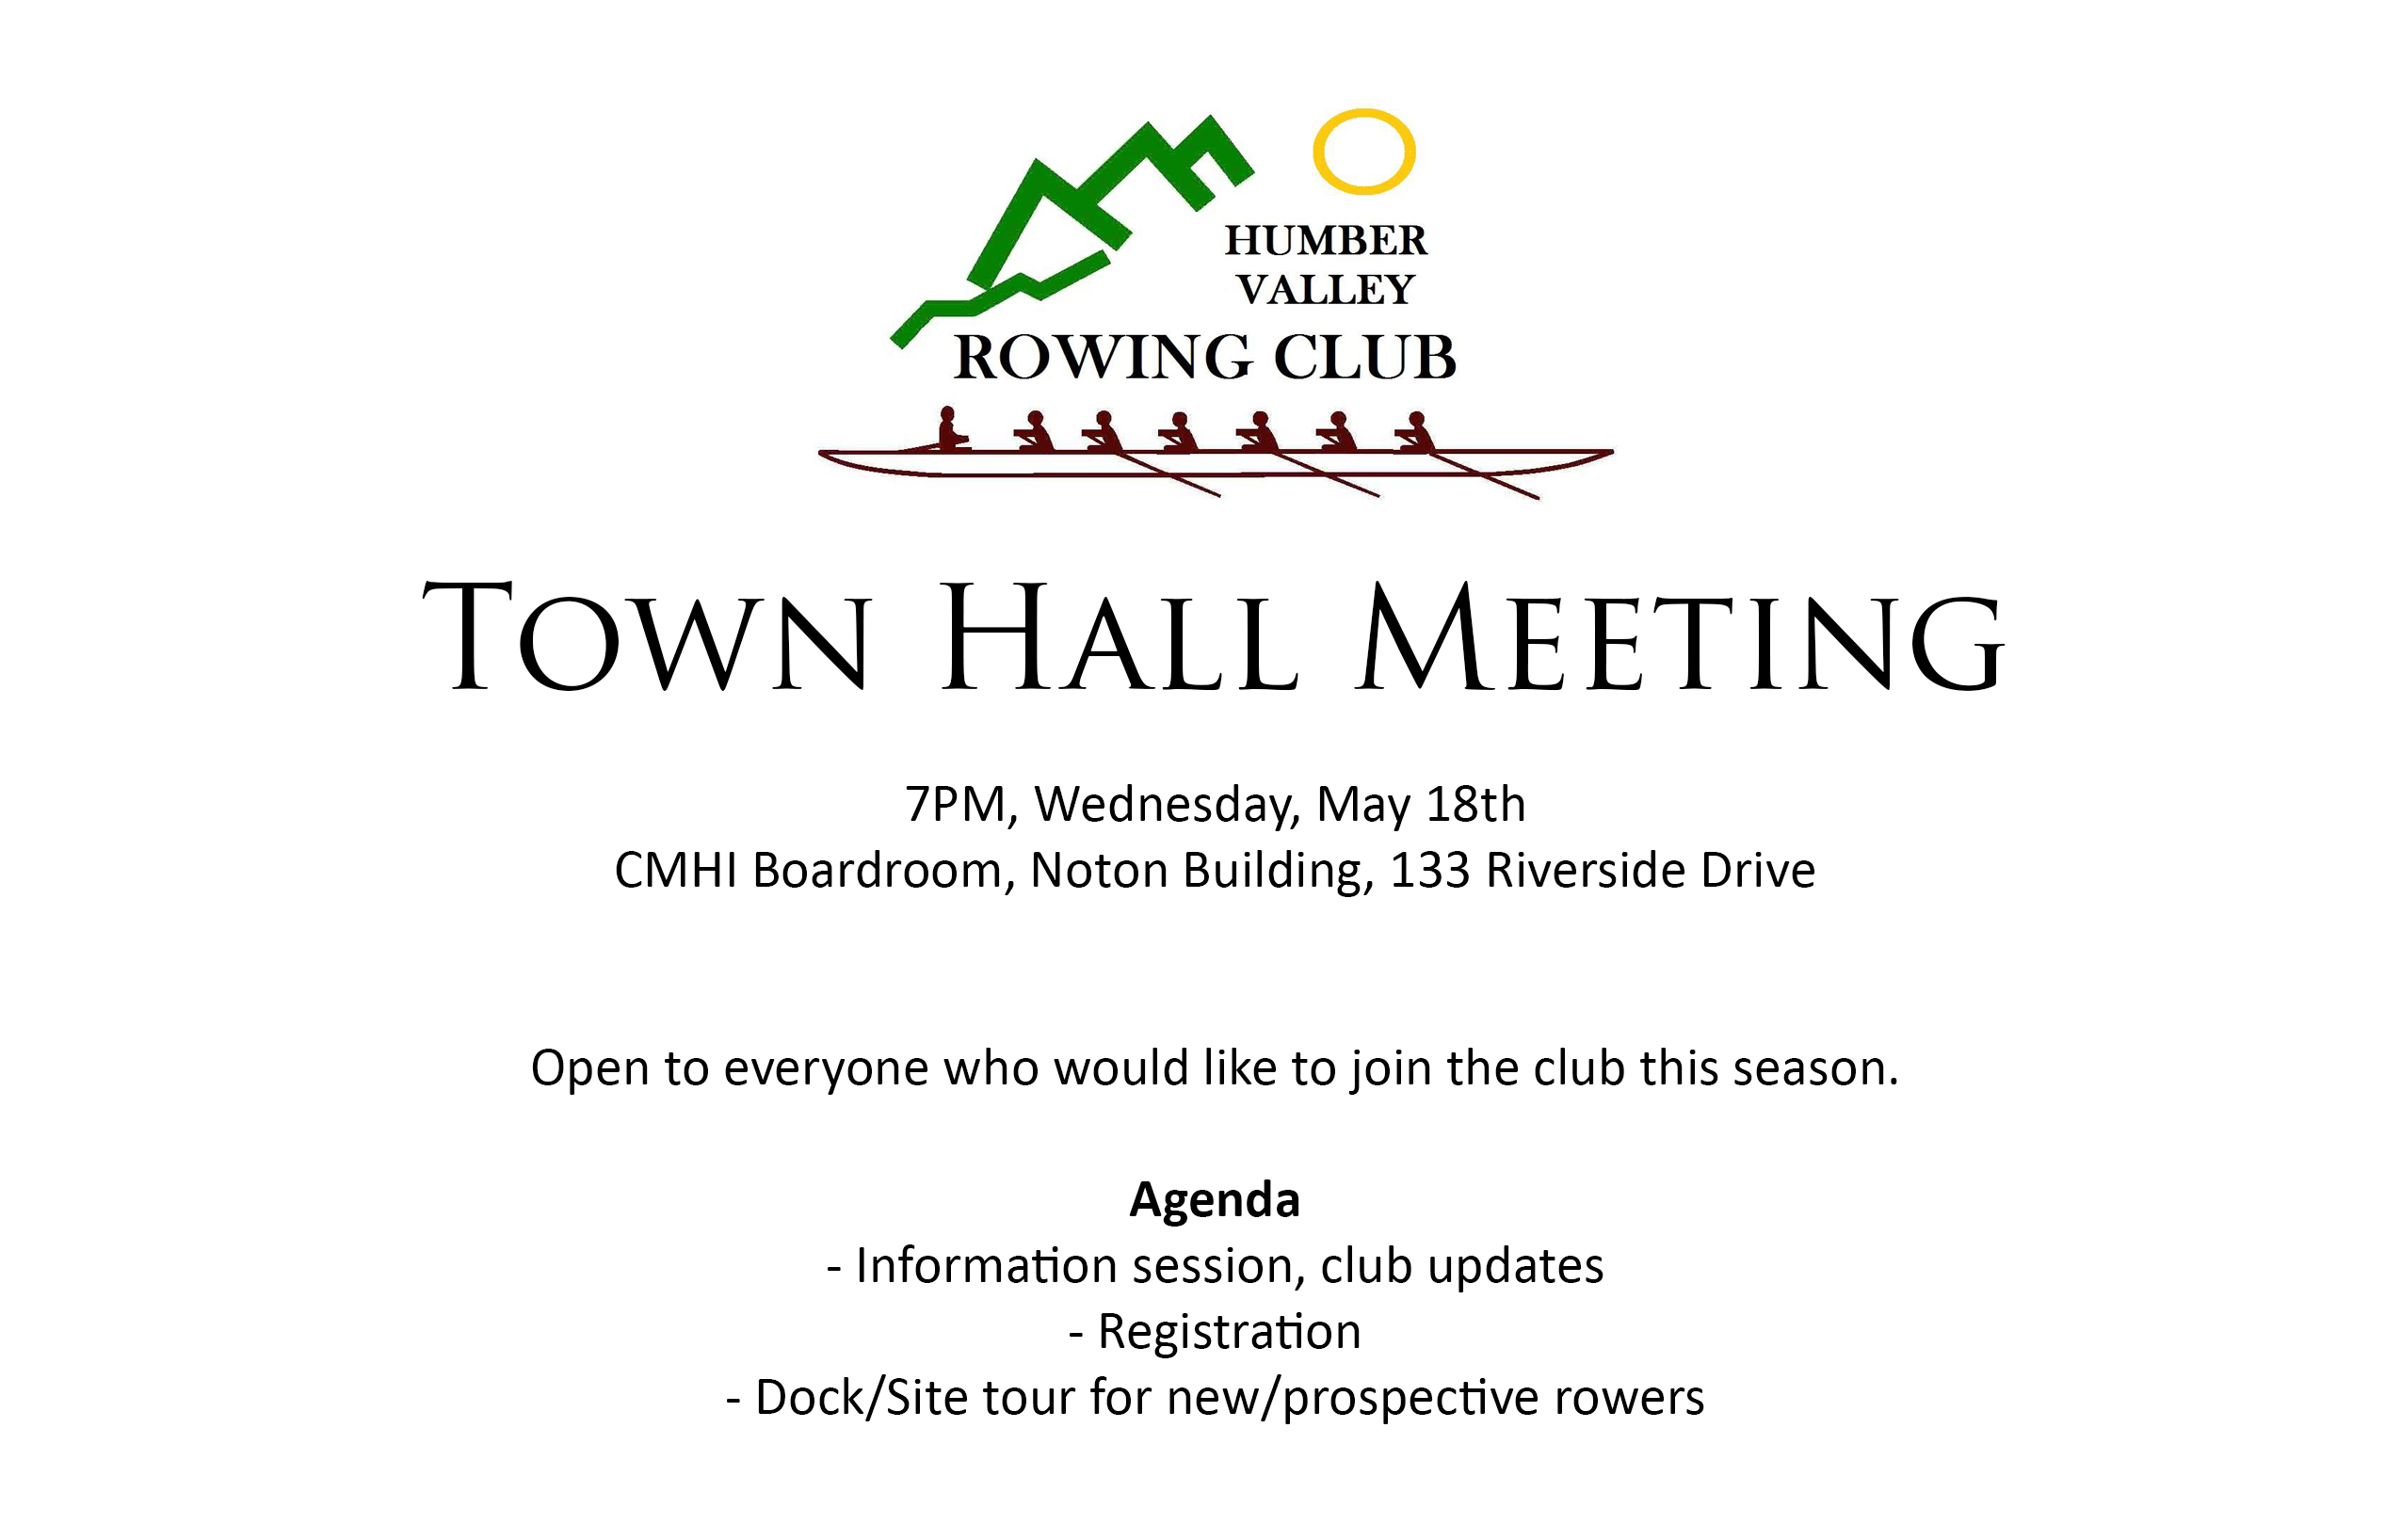 Town Hall Meeting | Humber Valley Rowing Club